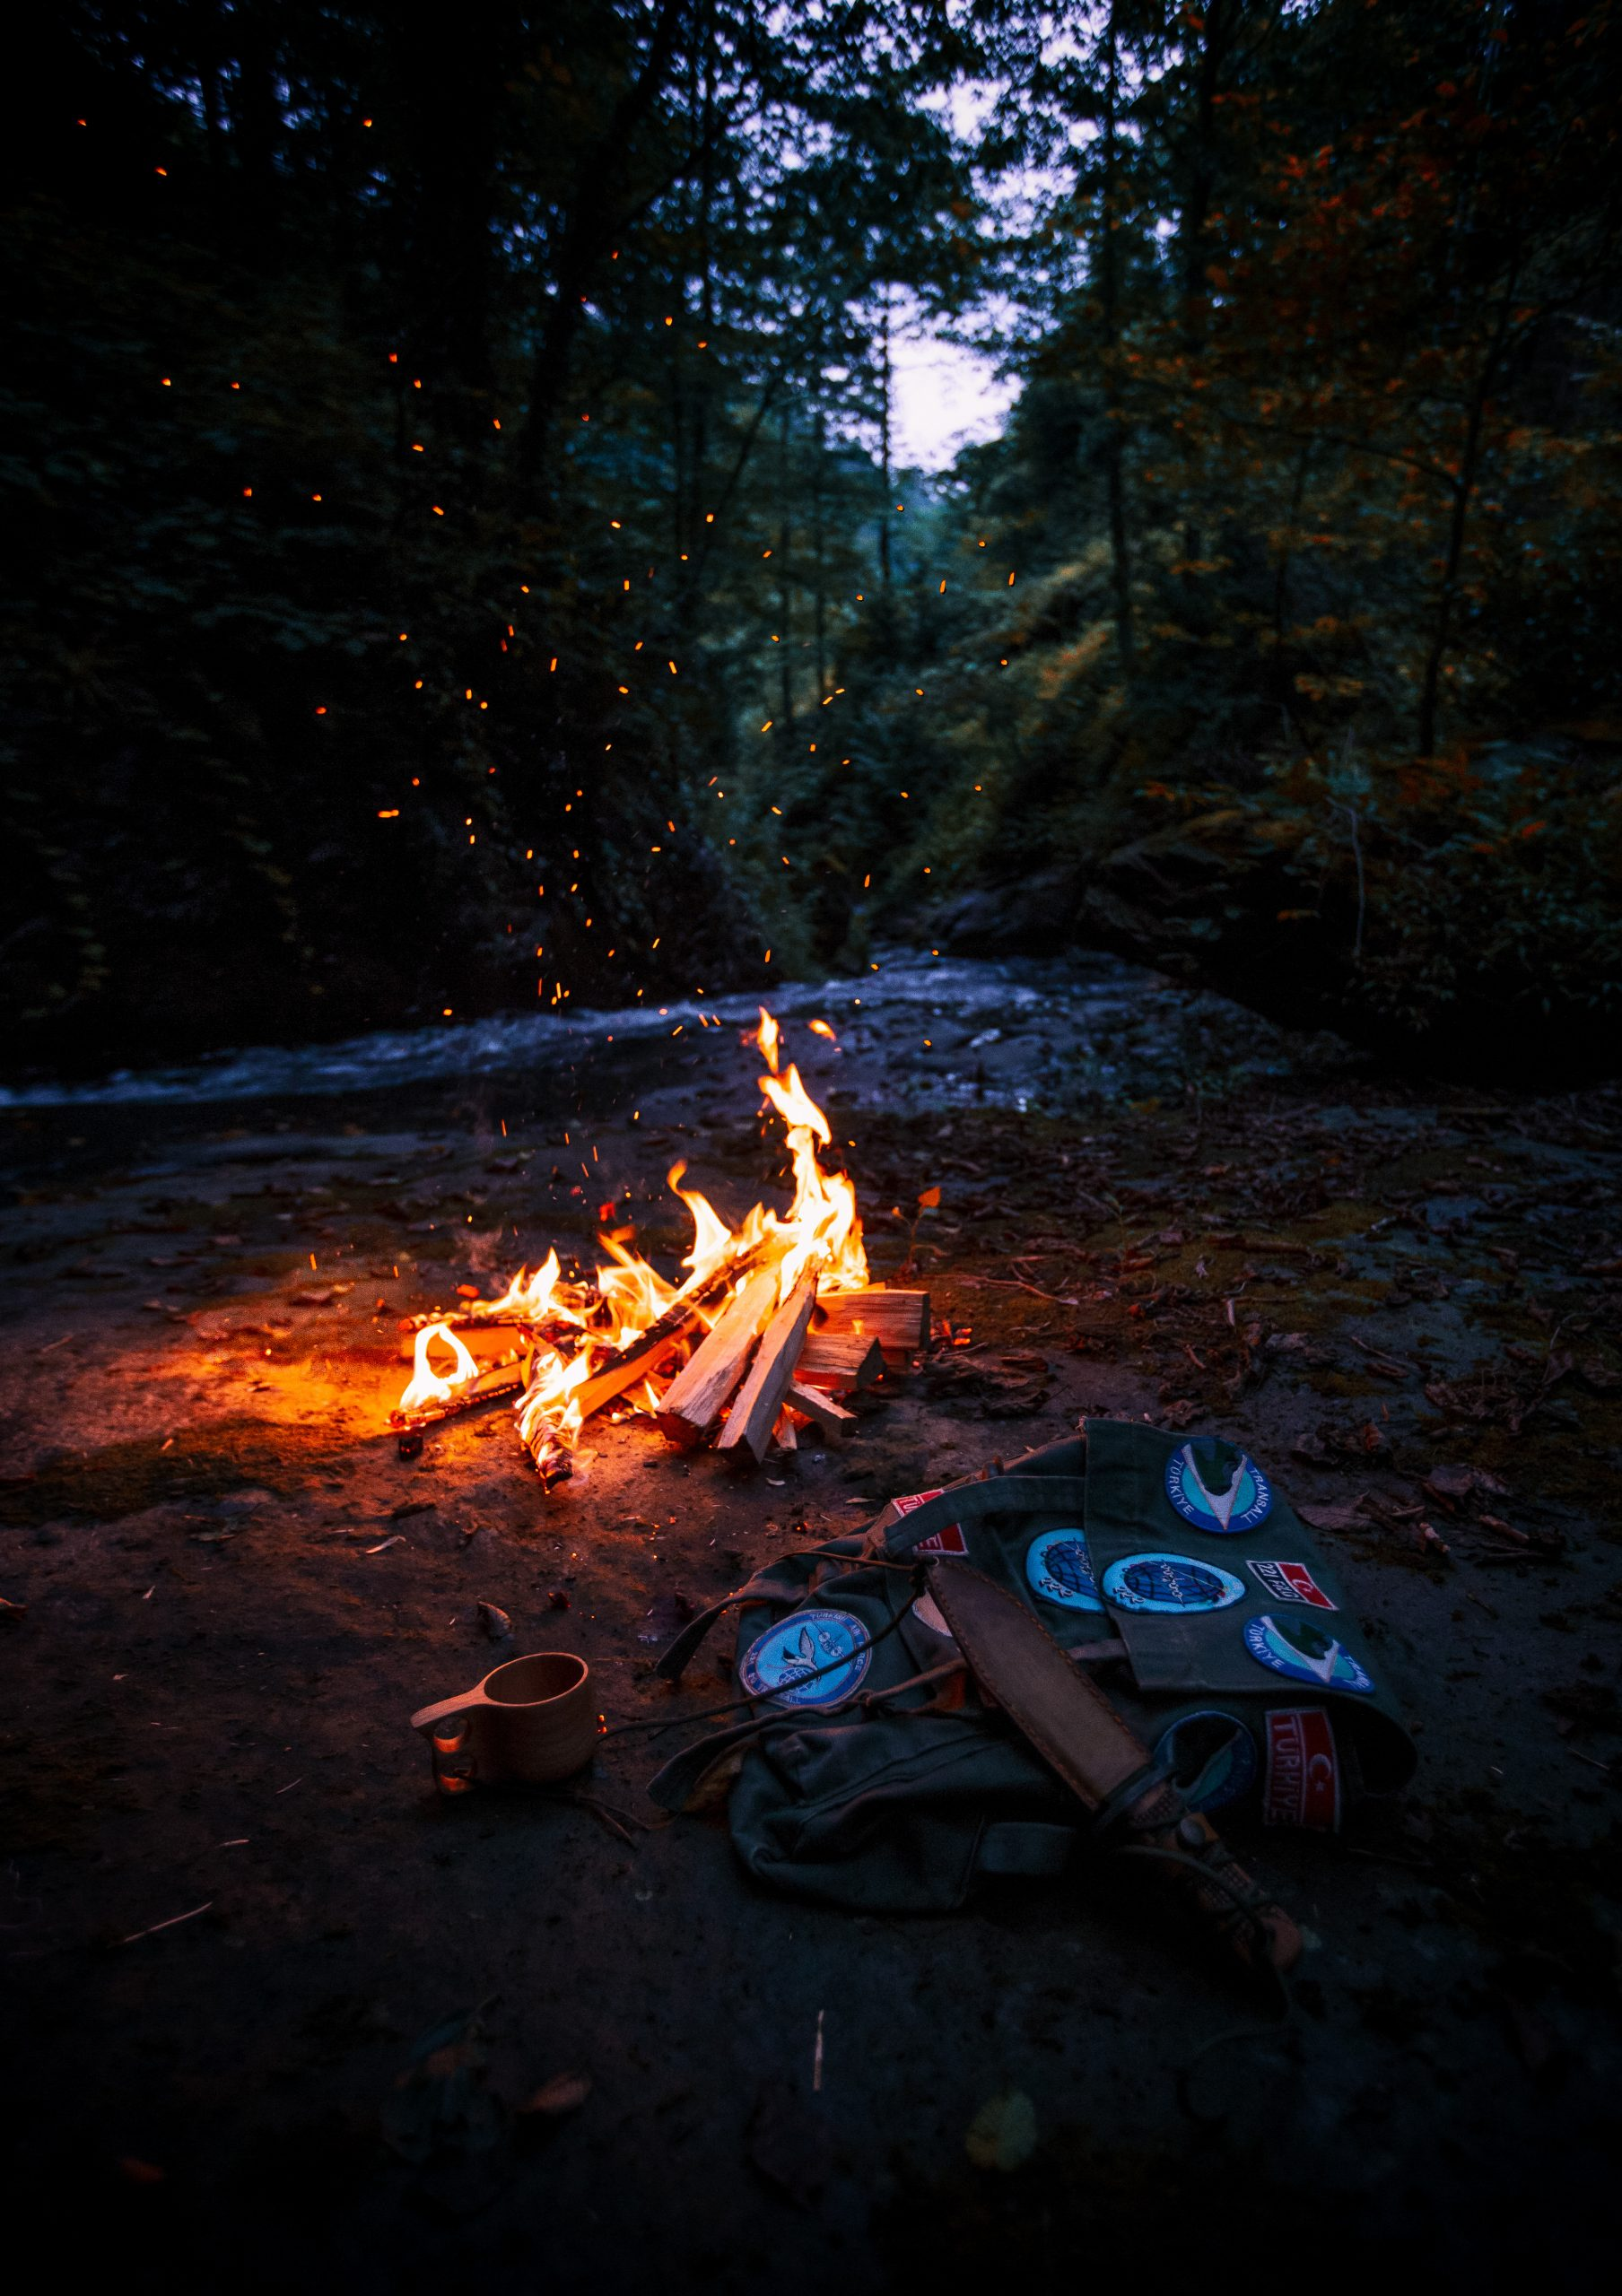 The key to a fun and successful camping trip is to be prepared. There is a lot to think about when packing for a camping trip. Use this post to make your own camping gear checklist for your next trip!